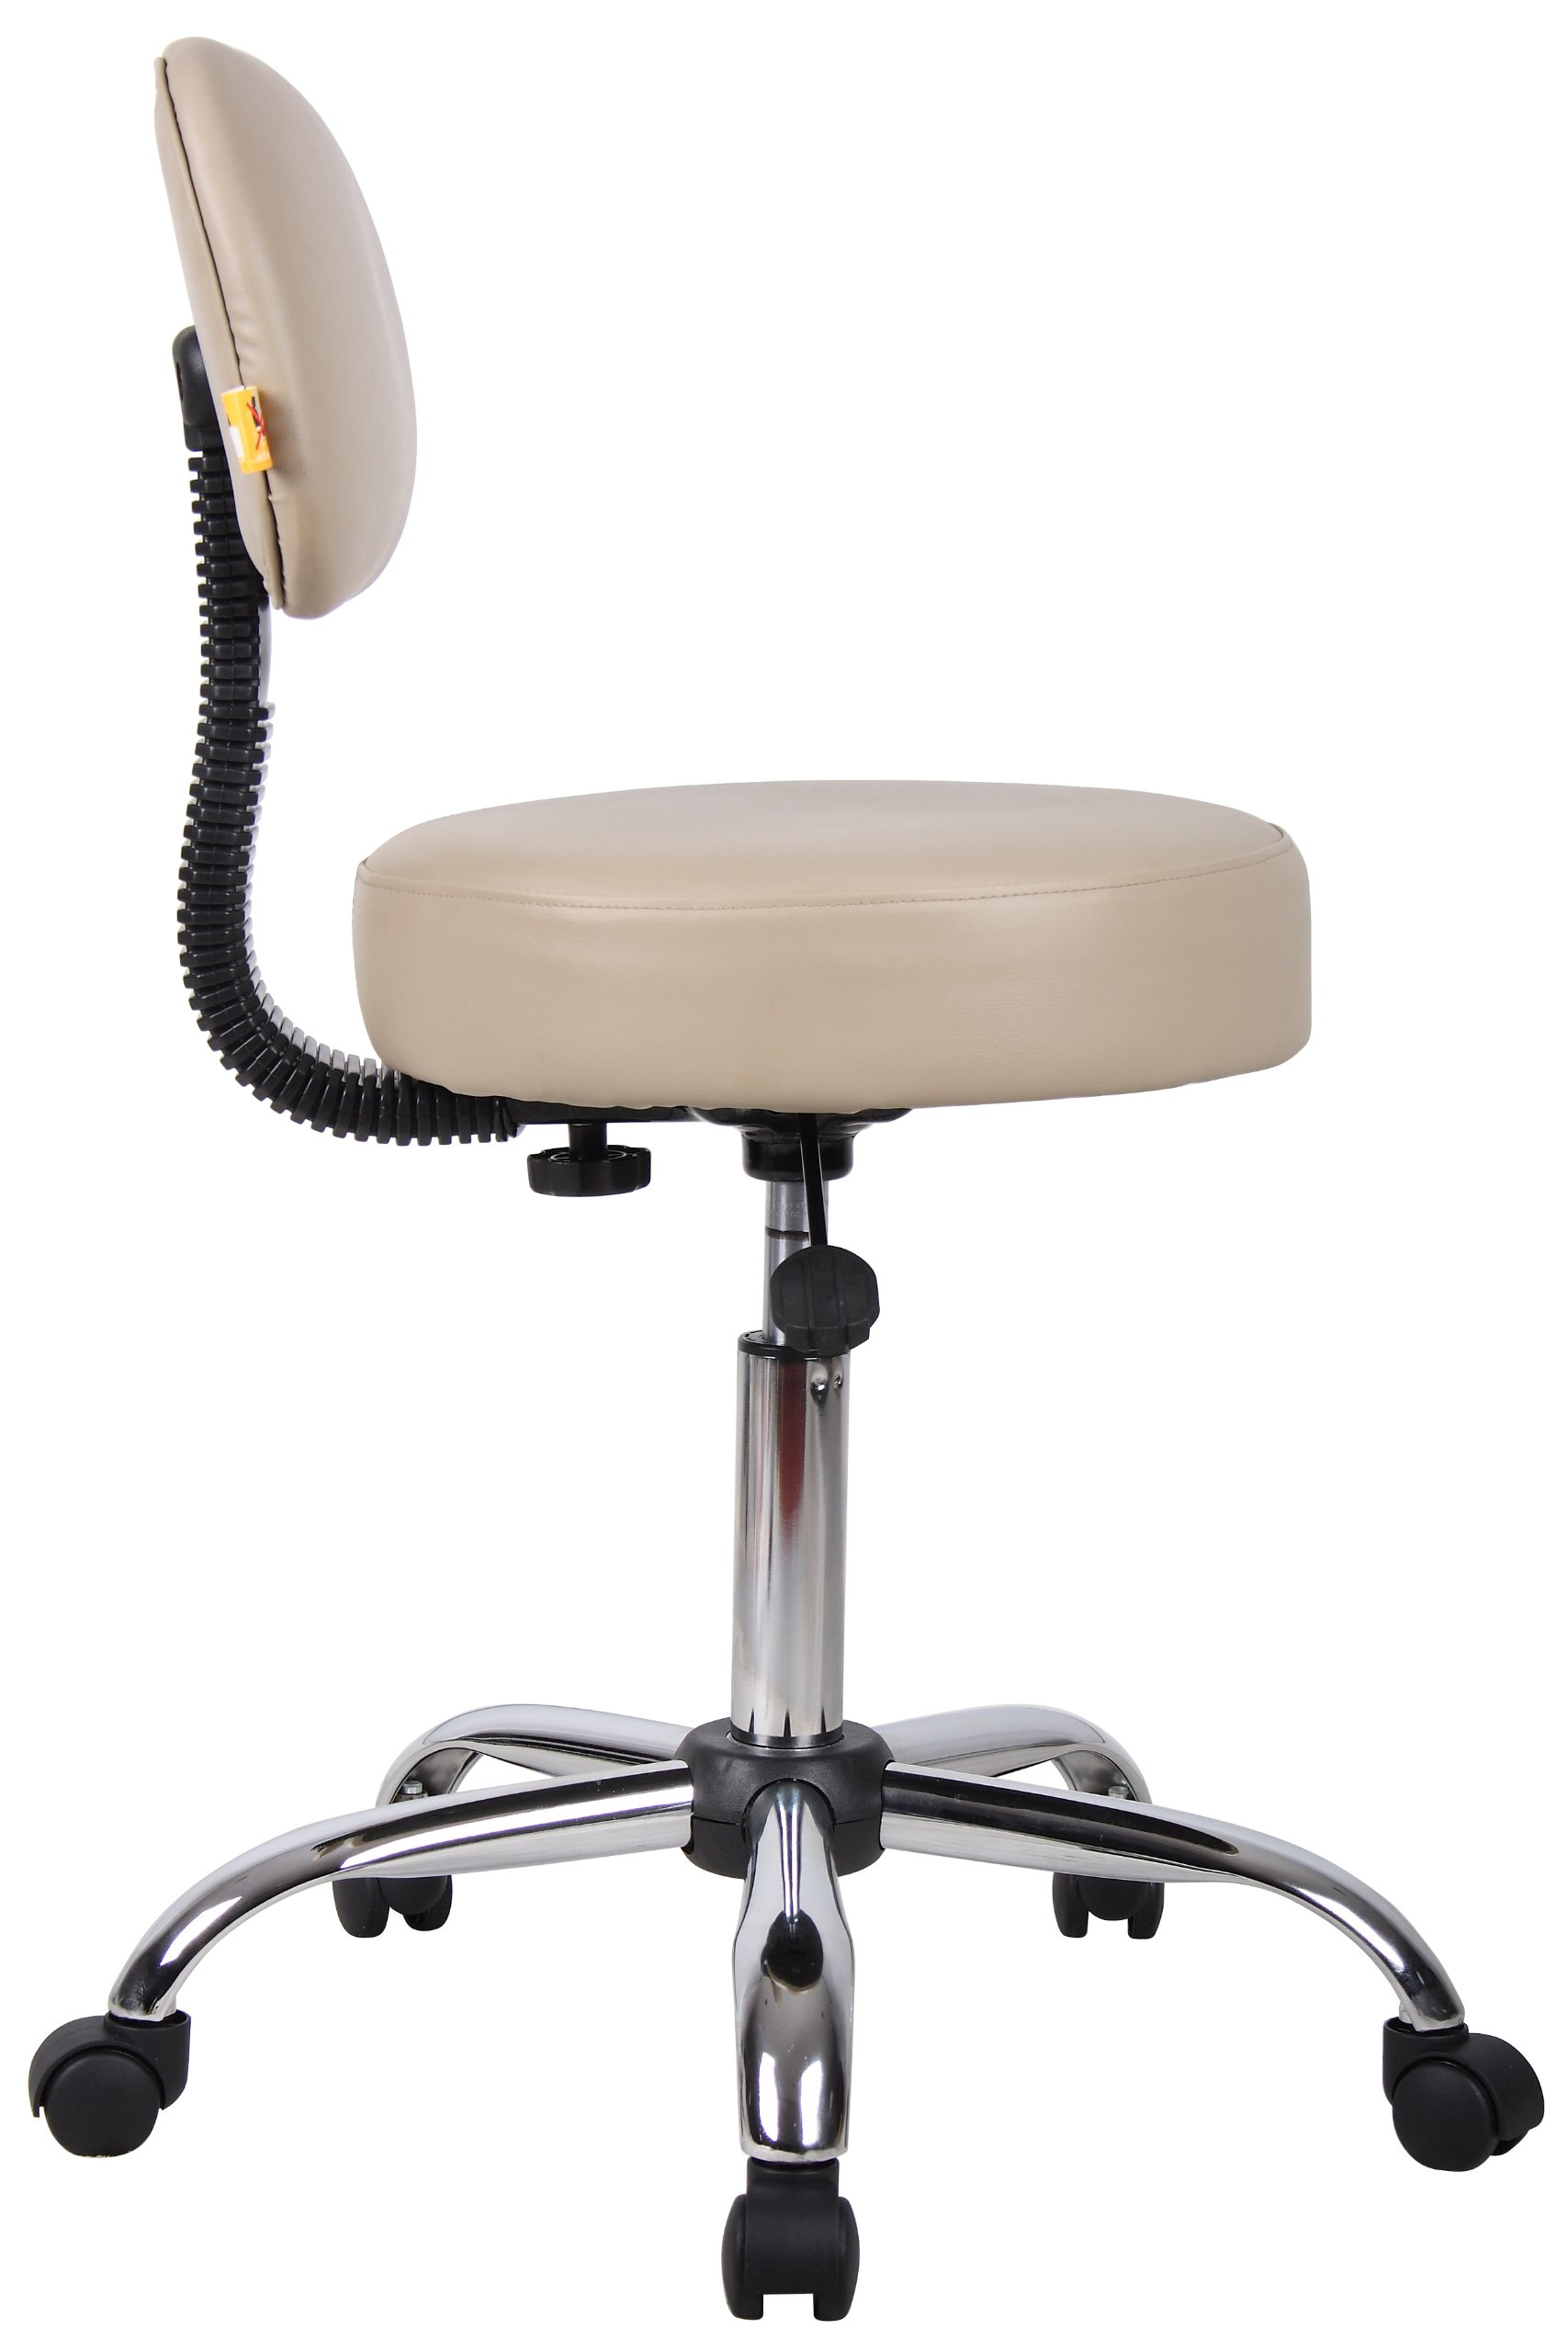 Boss Office Products B240-BG Be Well Medical Spa Stool in Beige